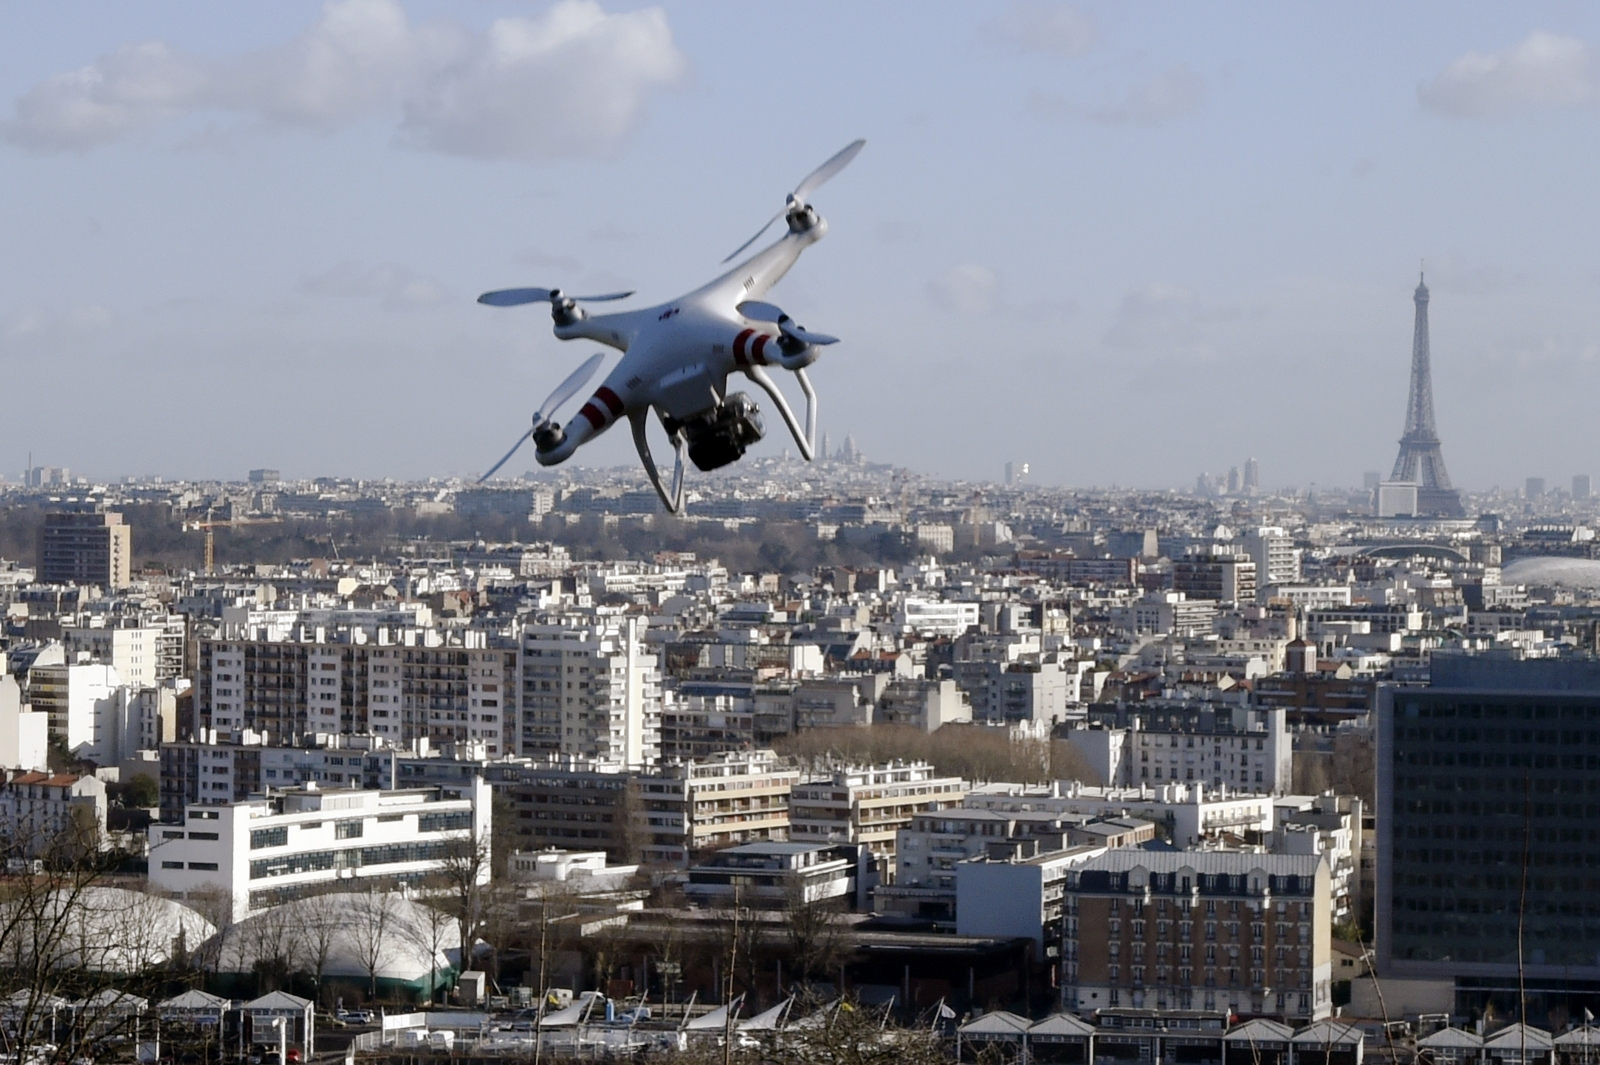 A helicopter drone flying over Paris